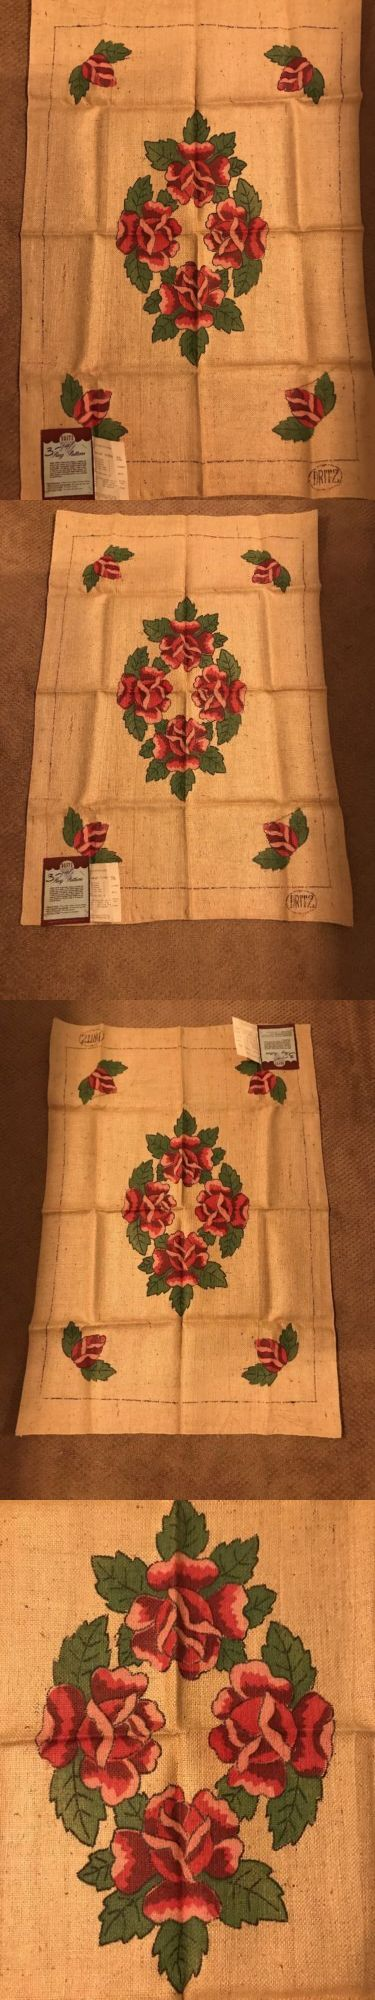 Primitive Hooking Patterns 157031: Hand Tinted Hand Hooking Dritz Floral Rosebud Burlap Rug Pattern 27 X 40 Rectang -> BUY IT NOW ONLY: $50 on eBay!